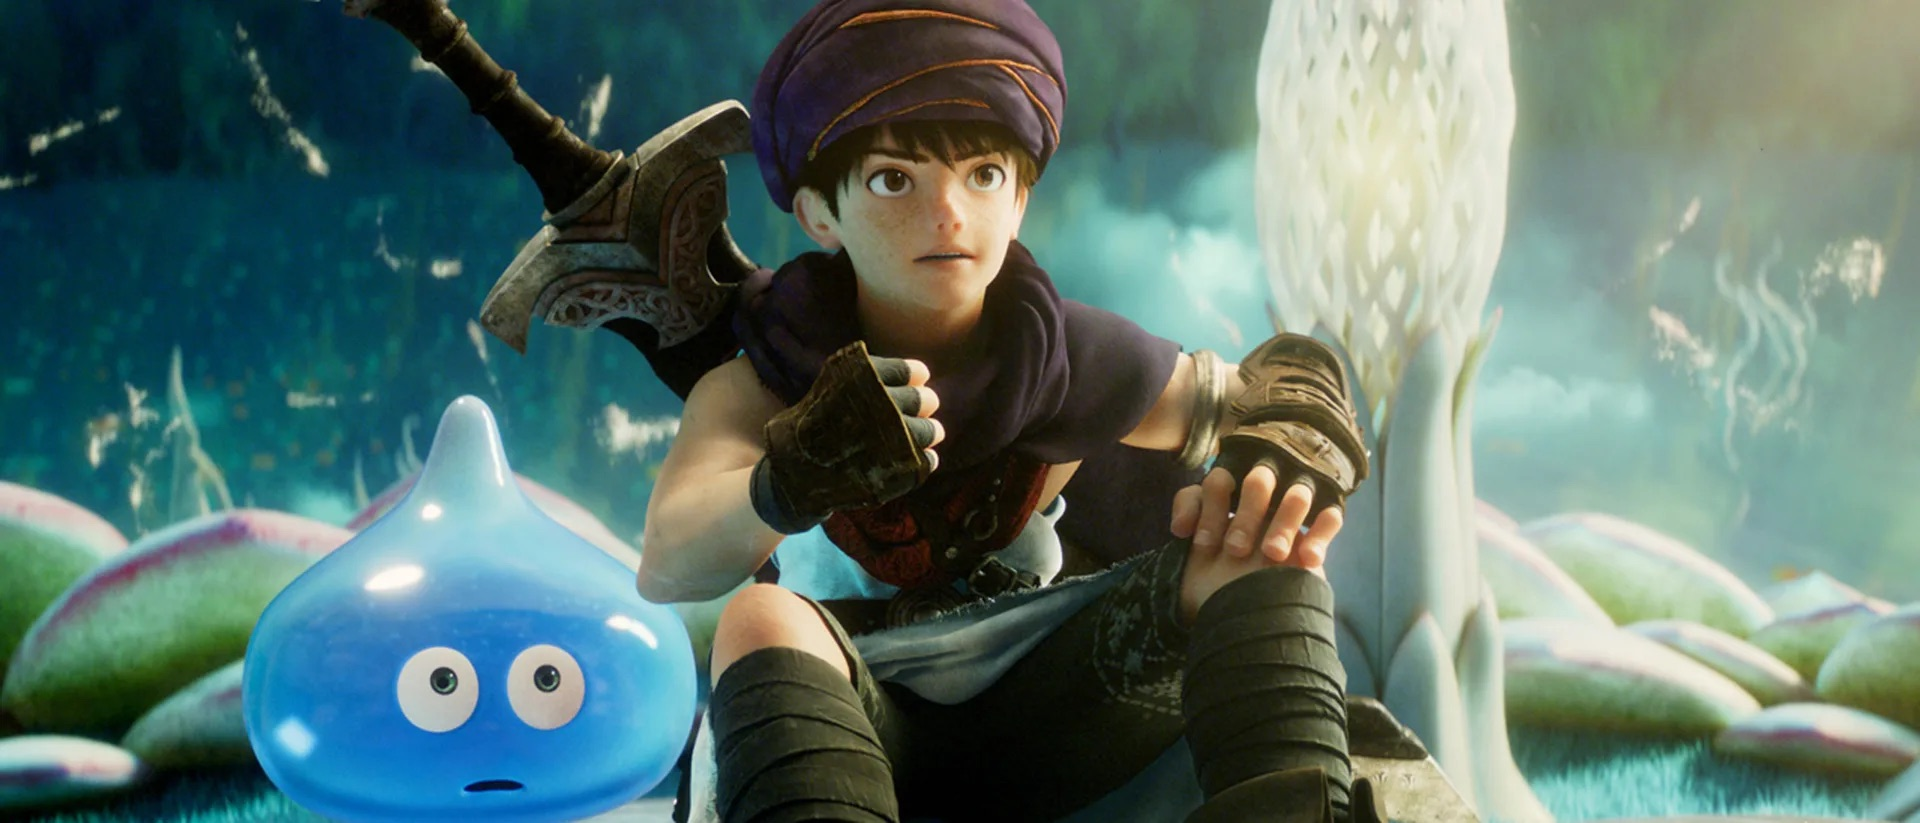 A boy and his slime look surprised in a still from Dragon Quest: Your Story